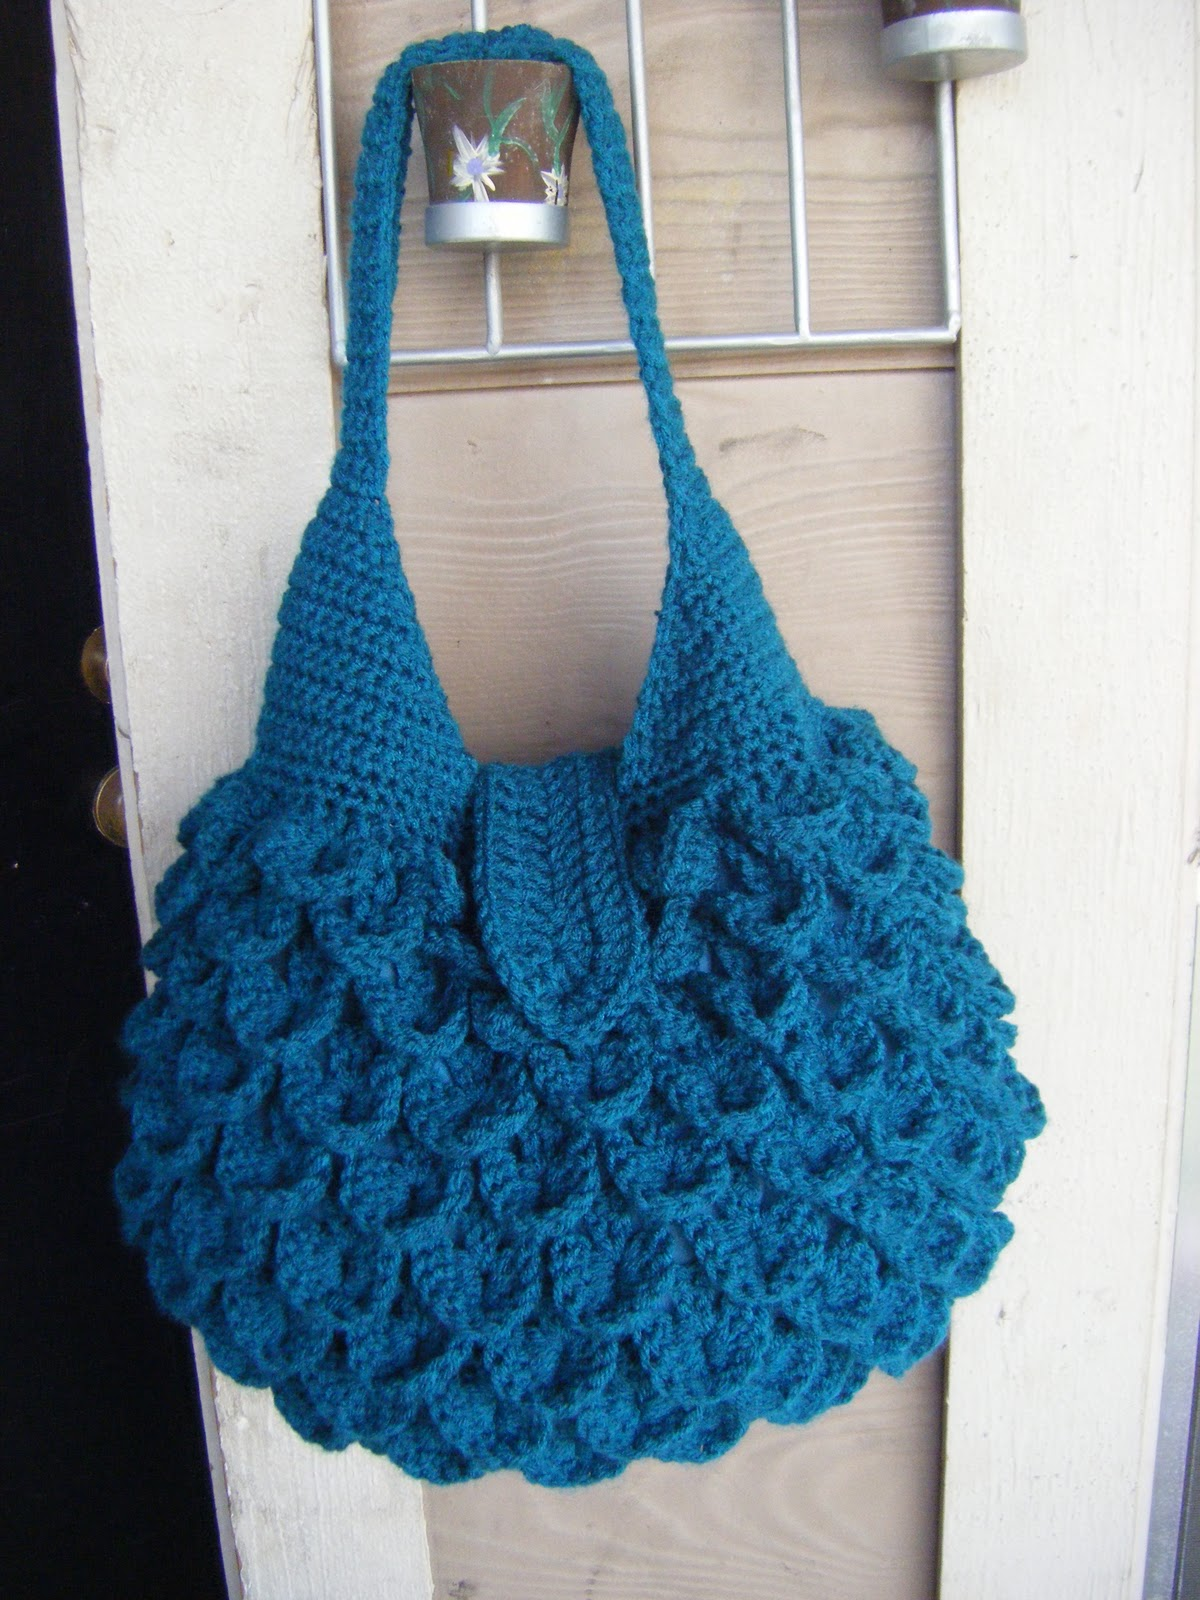 How To Crochet A Purse : Best Patterns: Crocodile Crochet Bag PATTERN